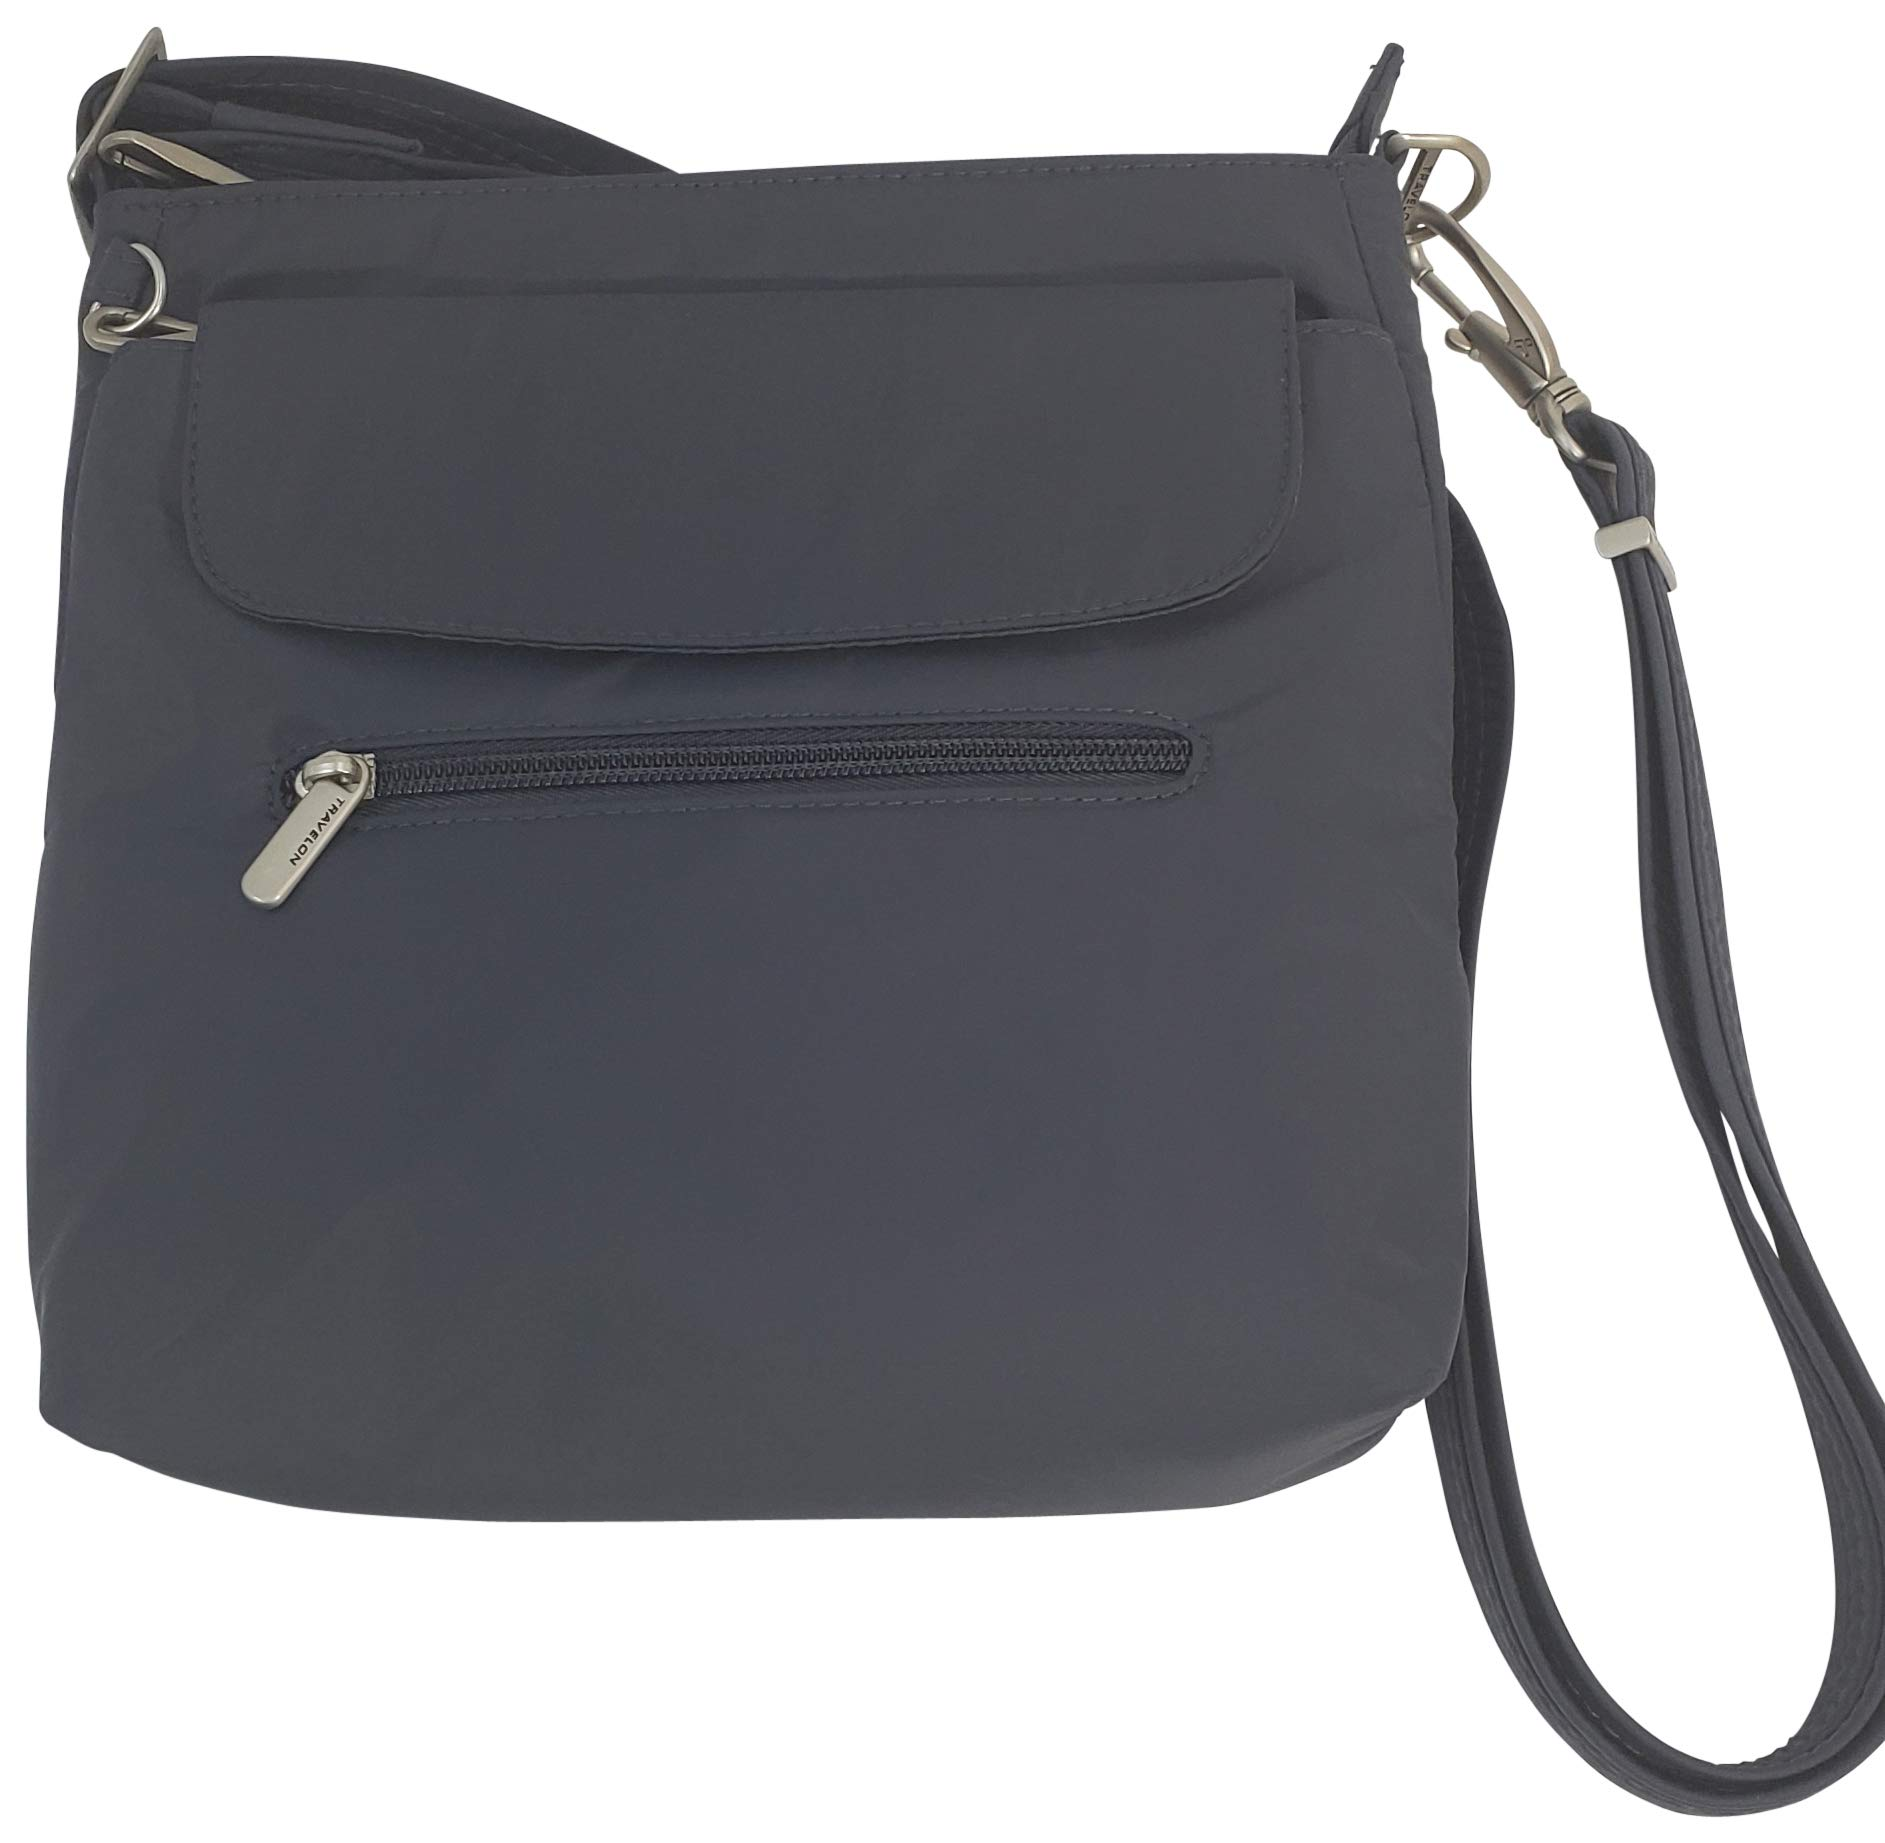 Travelon Anti-Theft Classic Mini Shoulder Bag (One_Size, Charcoal/Grey Lining) by Travelon